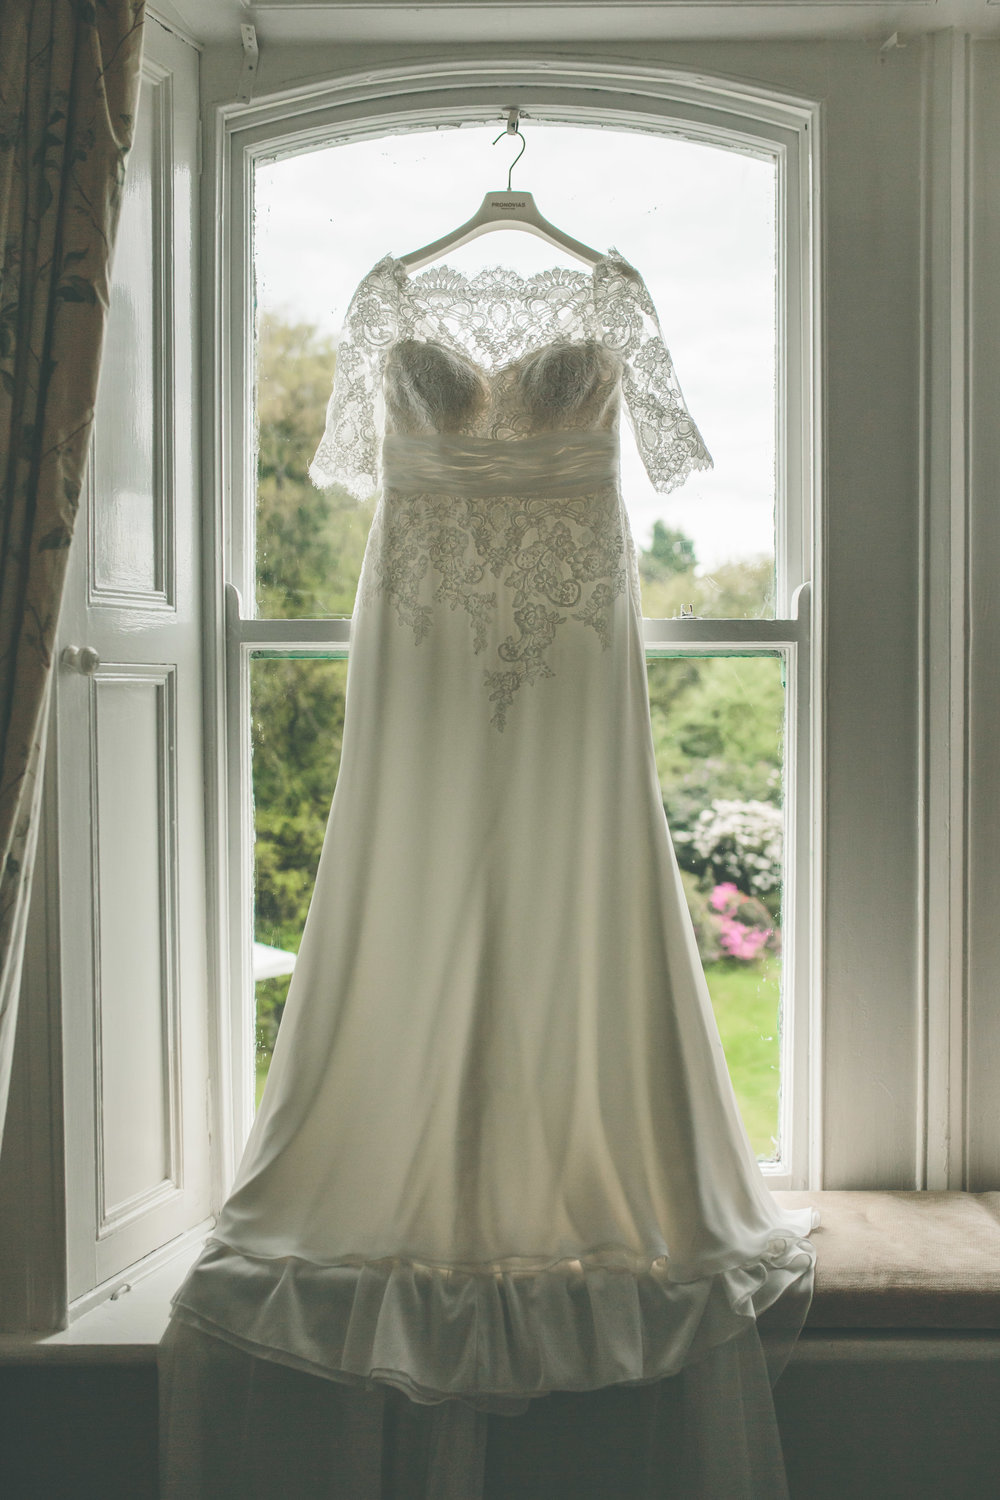 Wedding dress window, Cashel House Hotel photography